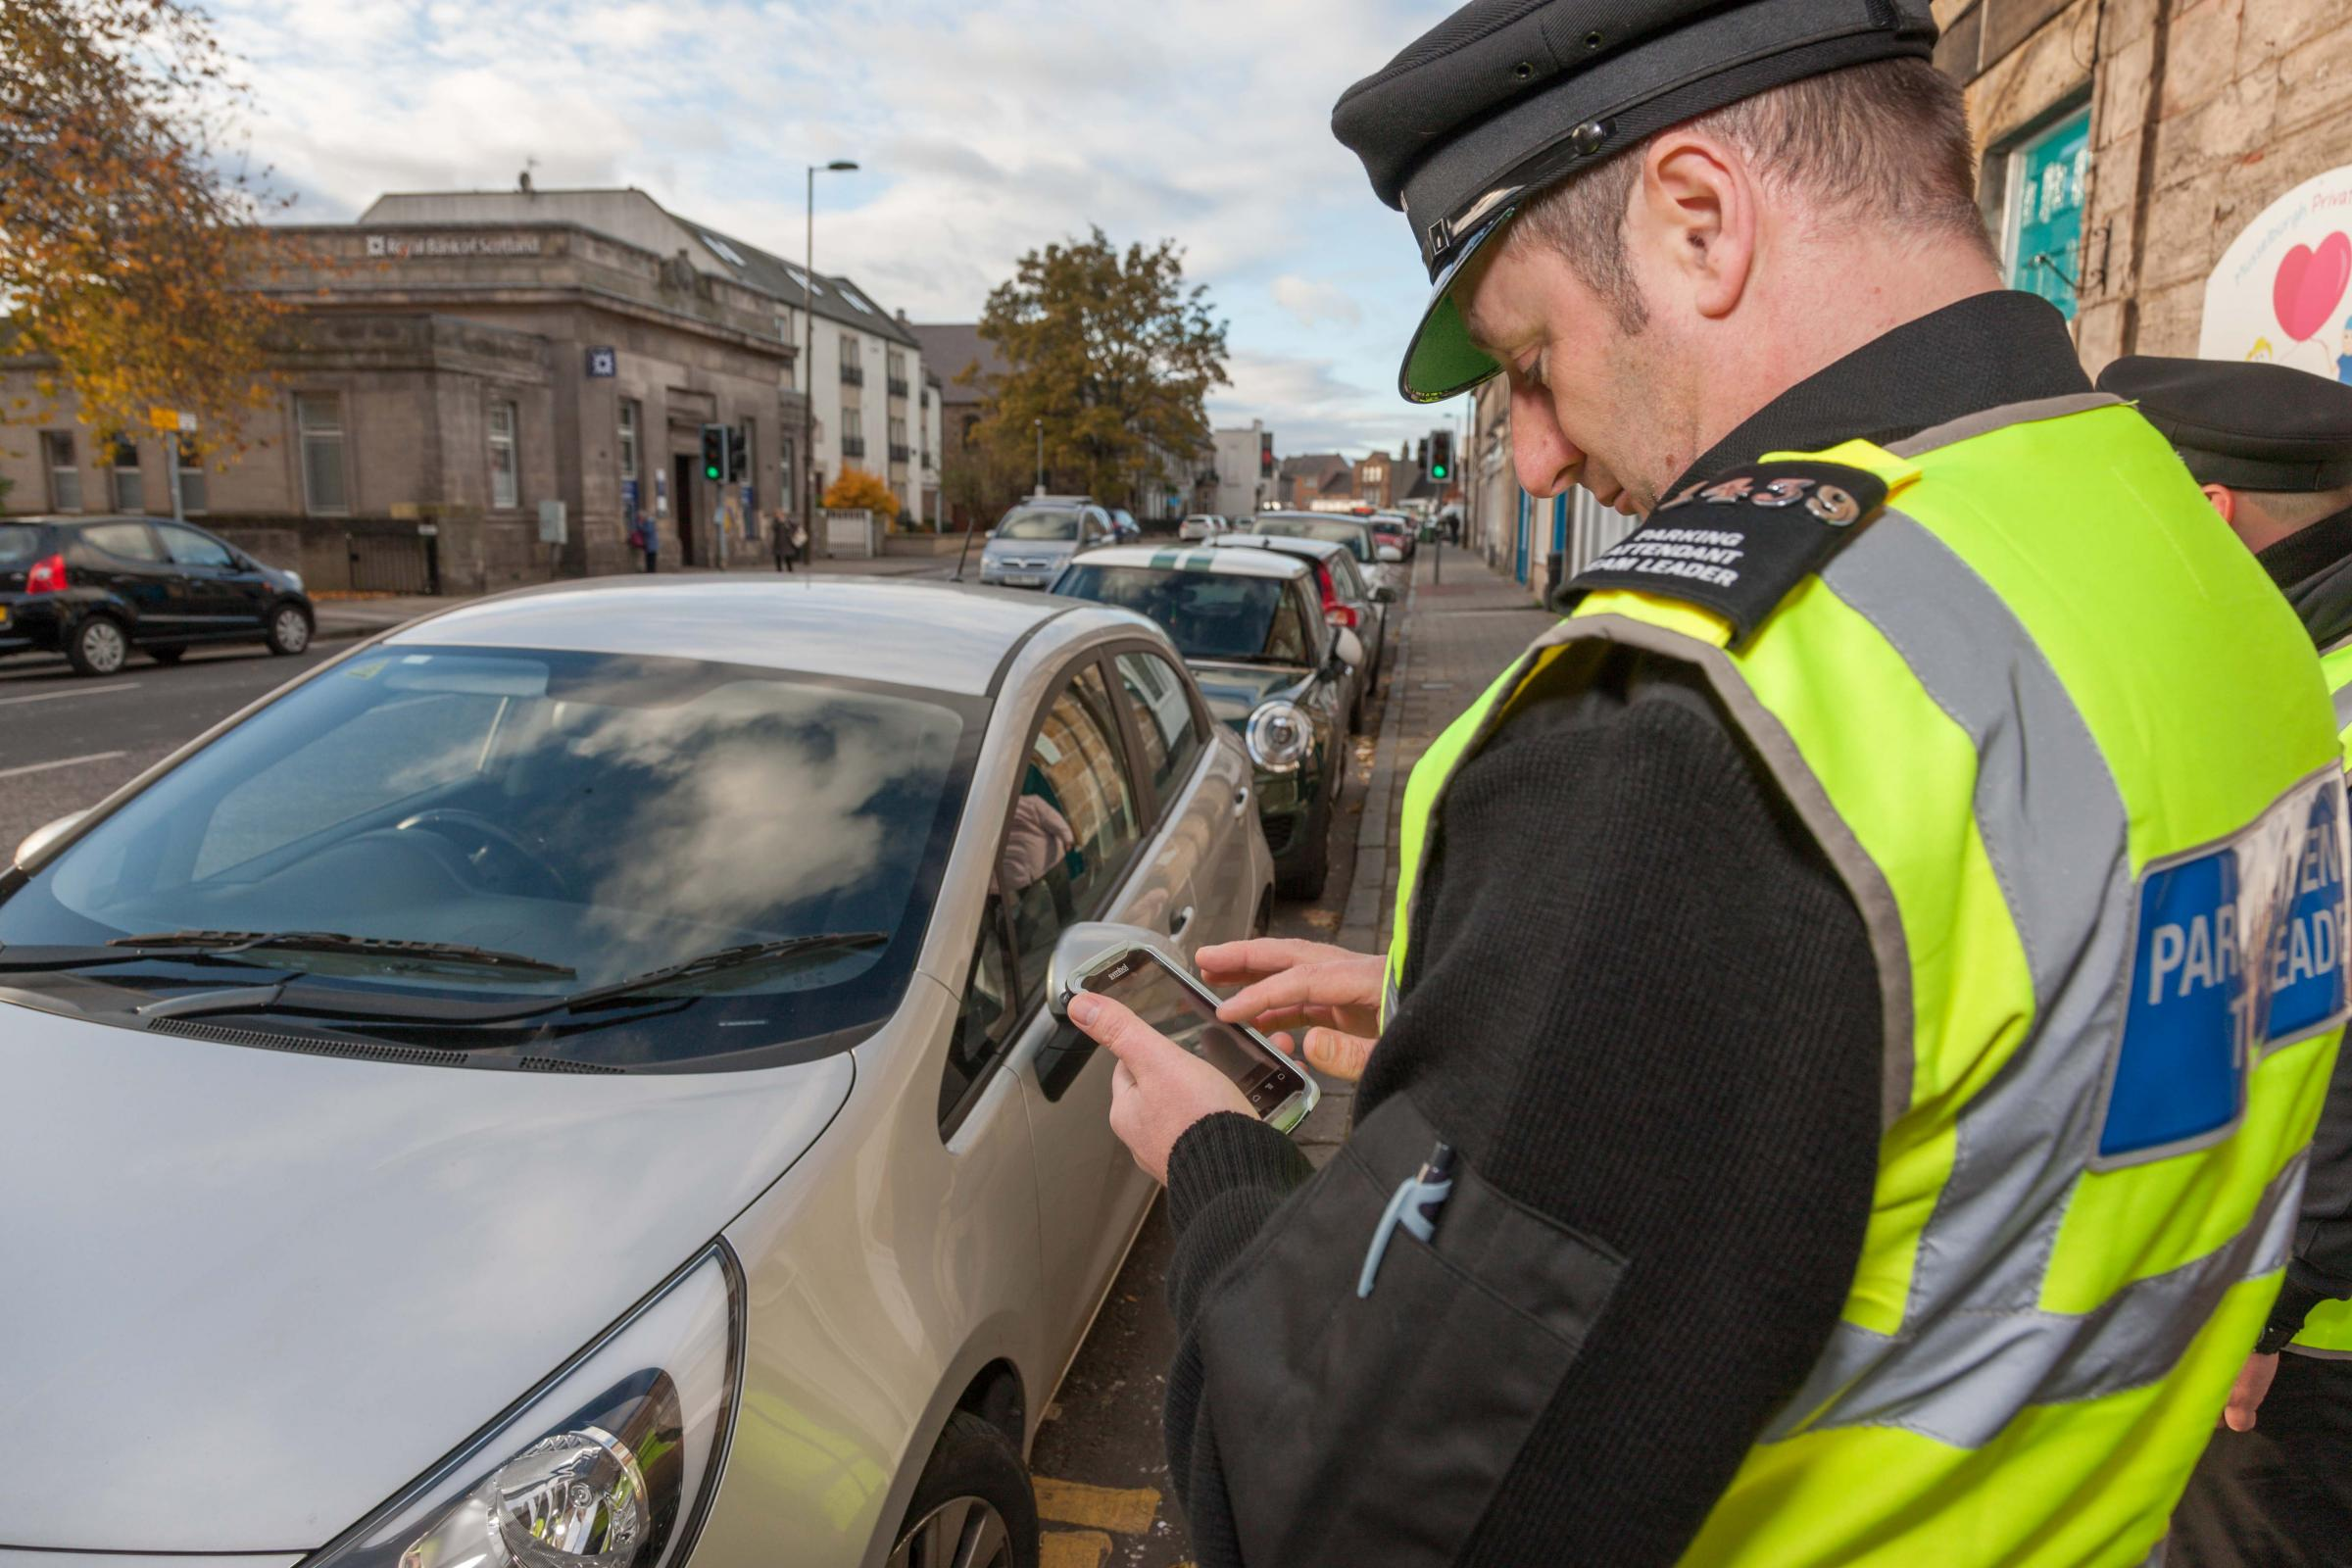 A parking attendant on patrol in Musselburgh. The council is now putting proposals to charge for parking in town centres out to public consultation